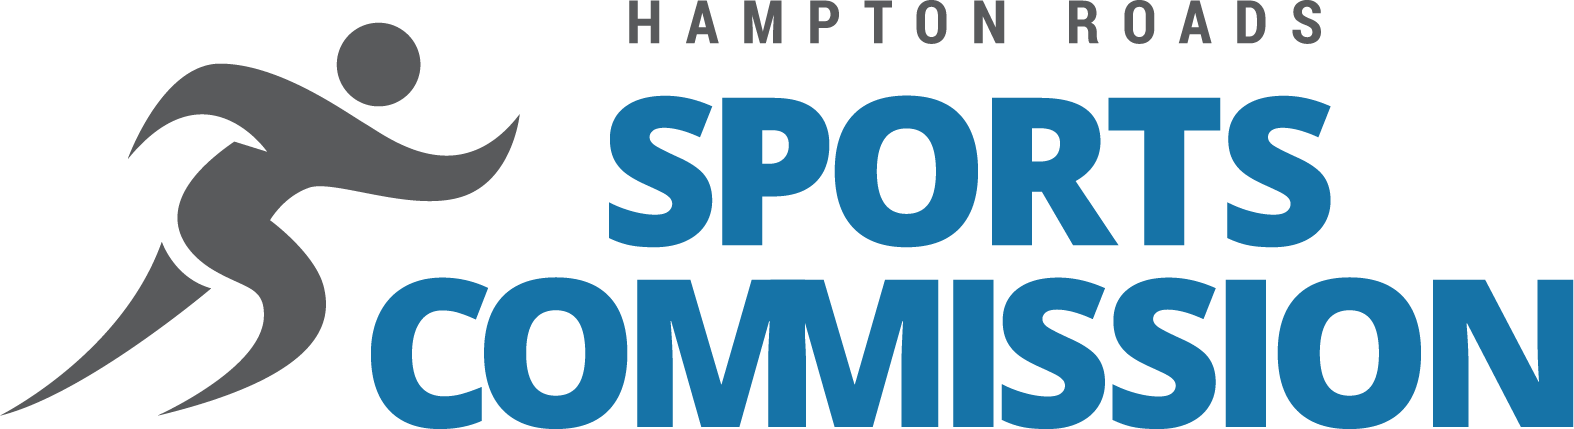 CantoAm PolicetoFire Games Coming to Hampton Roads in 2018